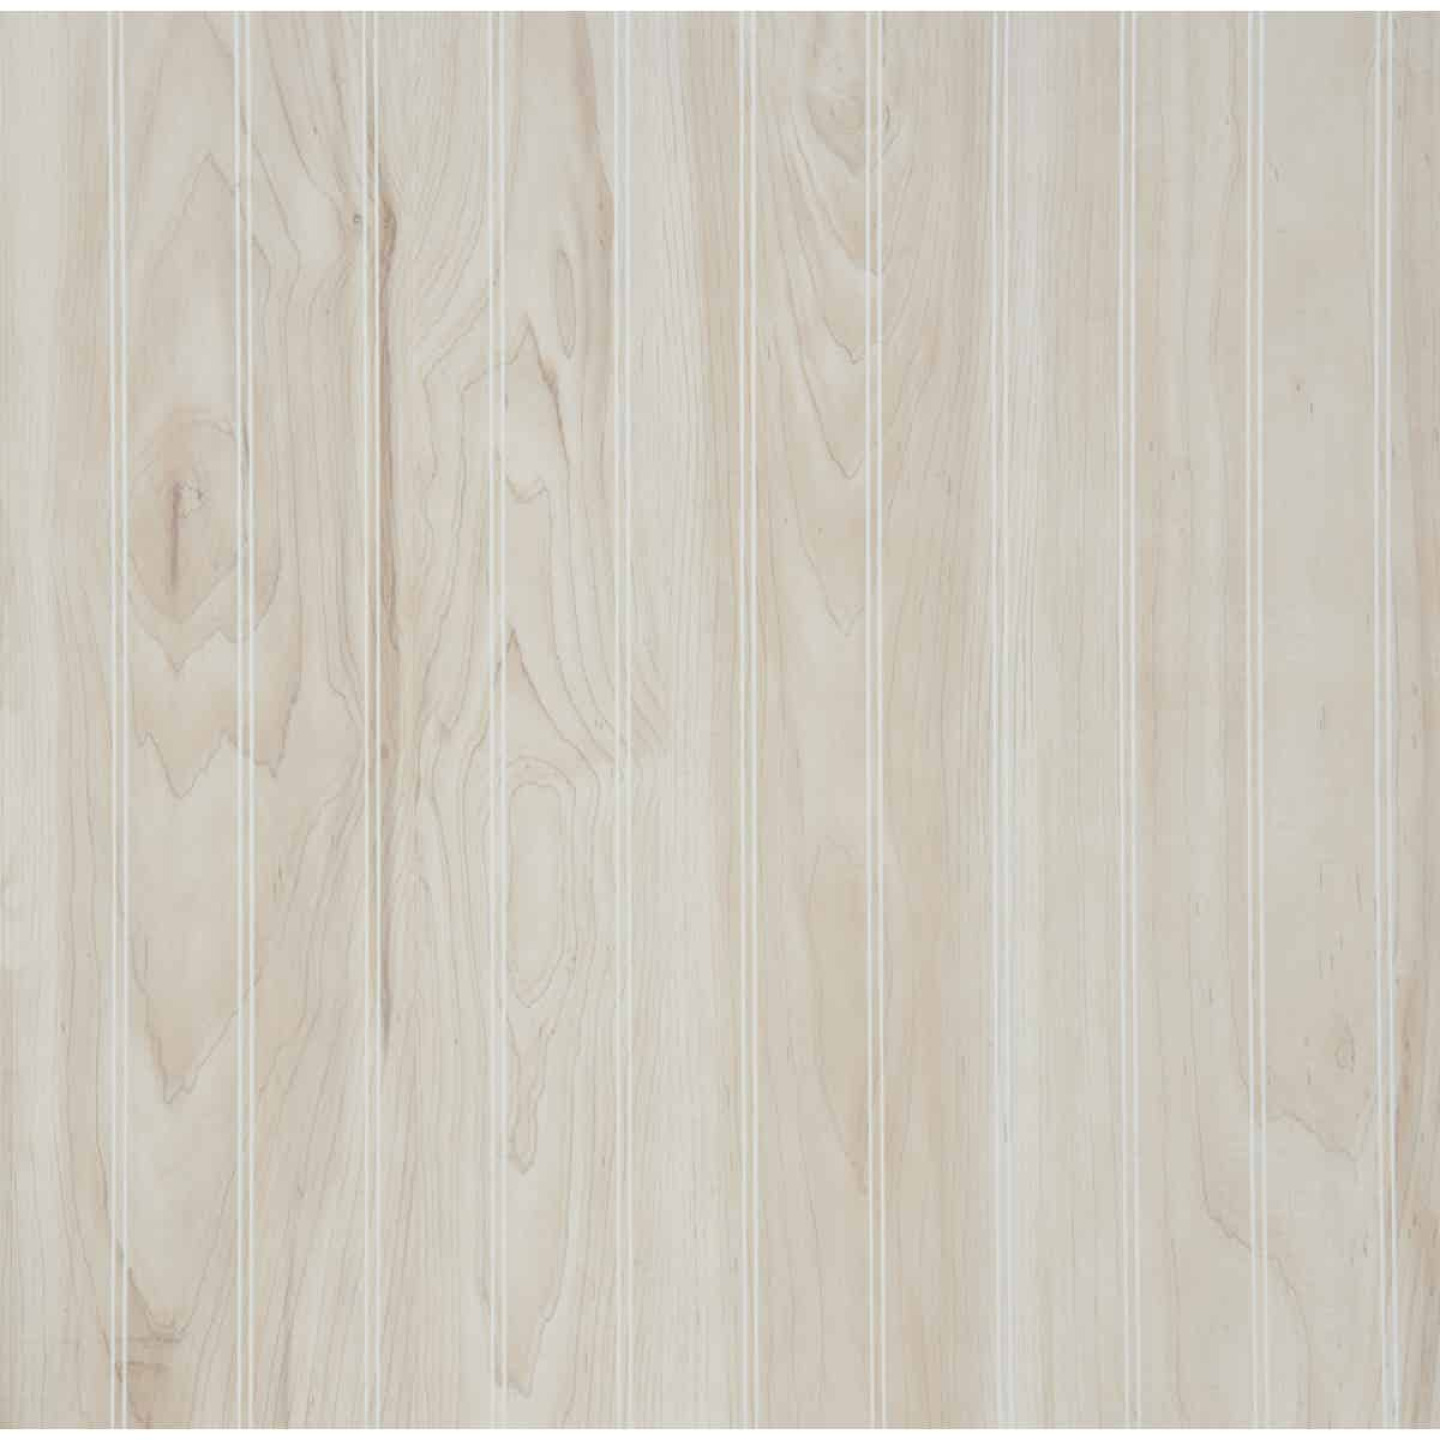 DPI 4 Ft. x 8 Ft. x 1/8 In. Frosted Maple Woodgrain Wall Paneling Image 4